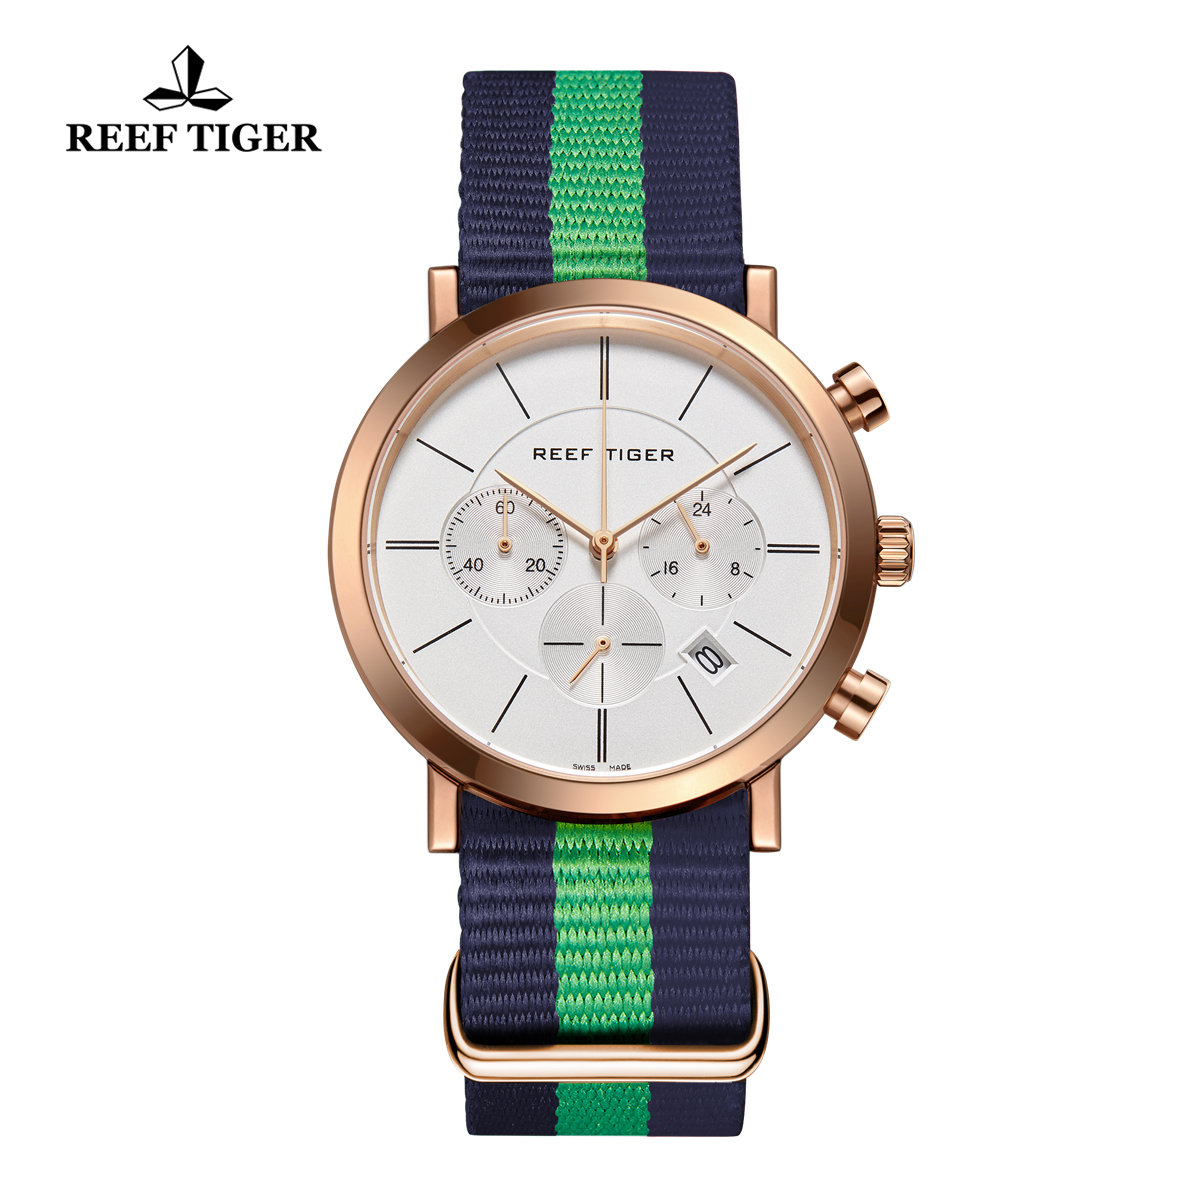 Reef Tiger Business Watch Ultra Thin Rose Gold White Dial Chronograph Quartz Watch RGA162-PWLNL